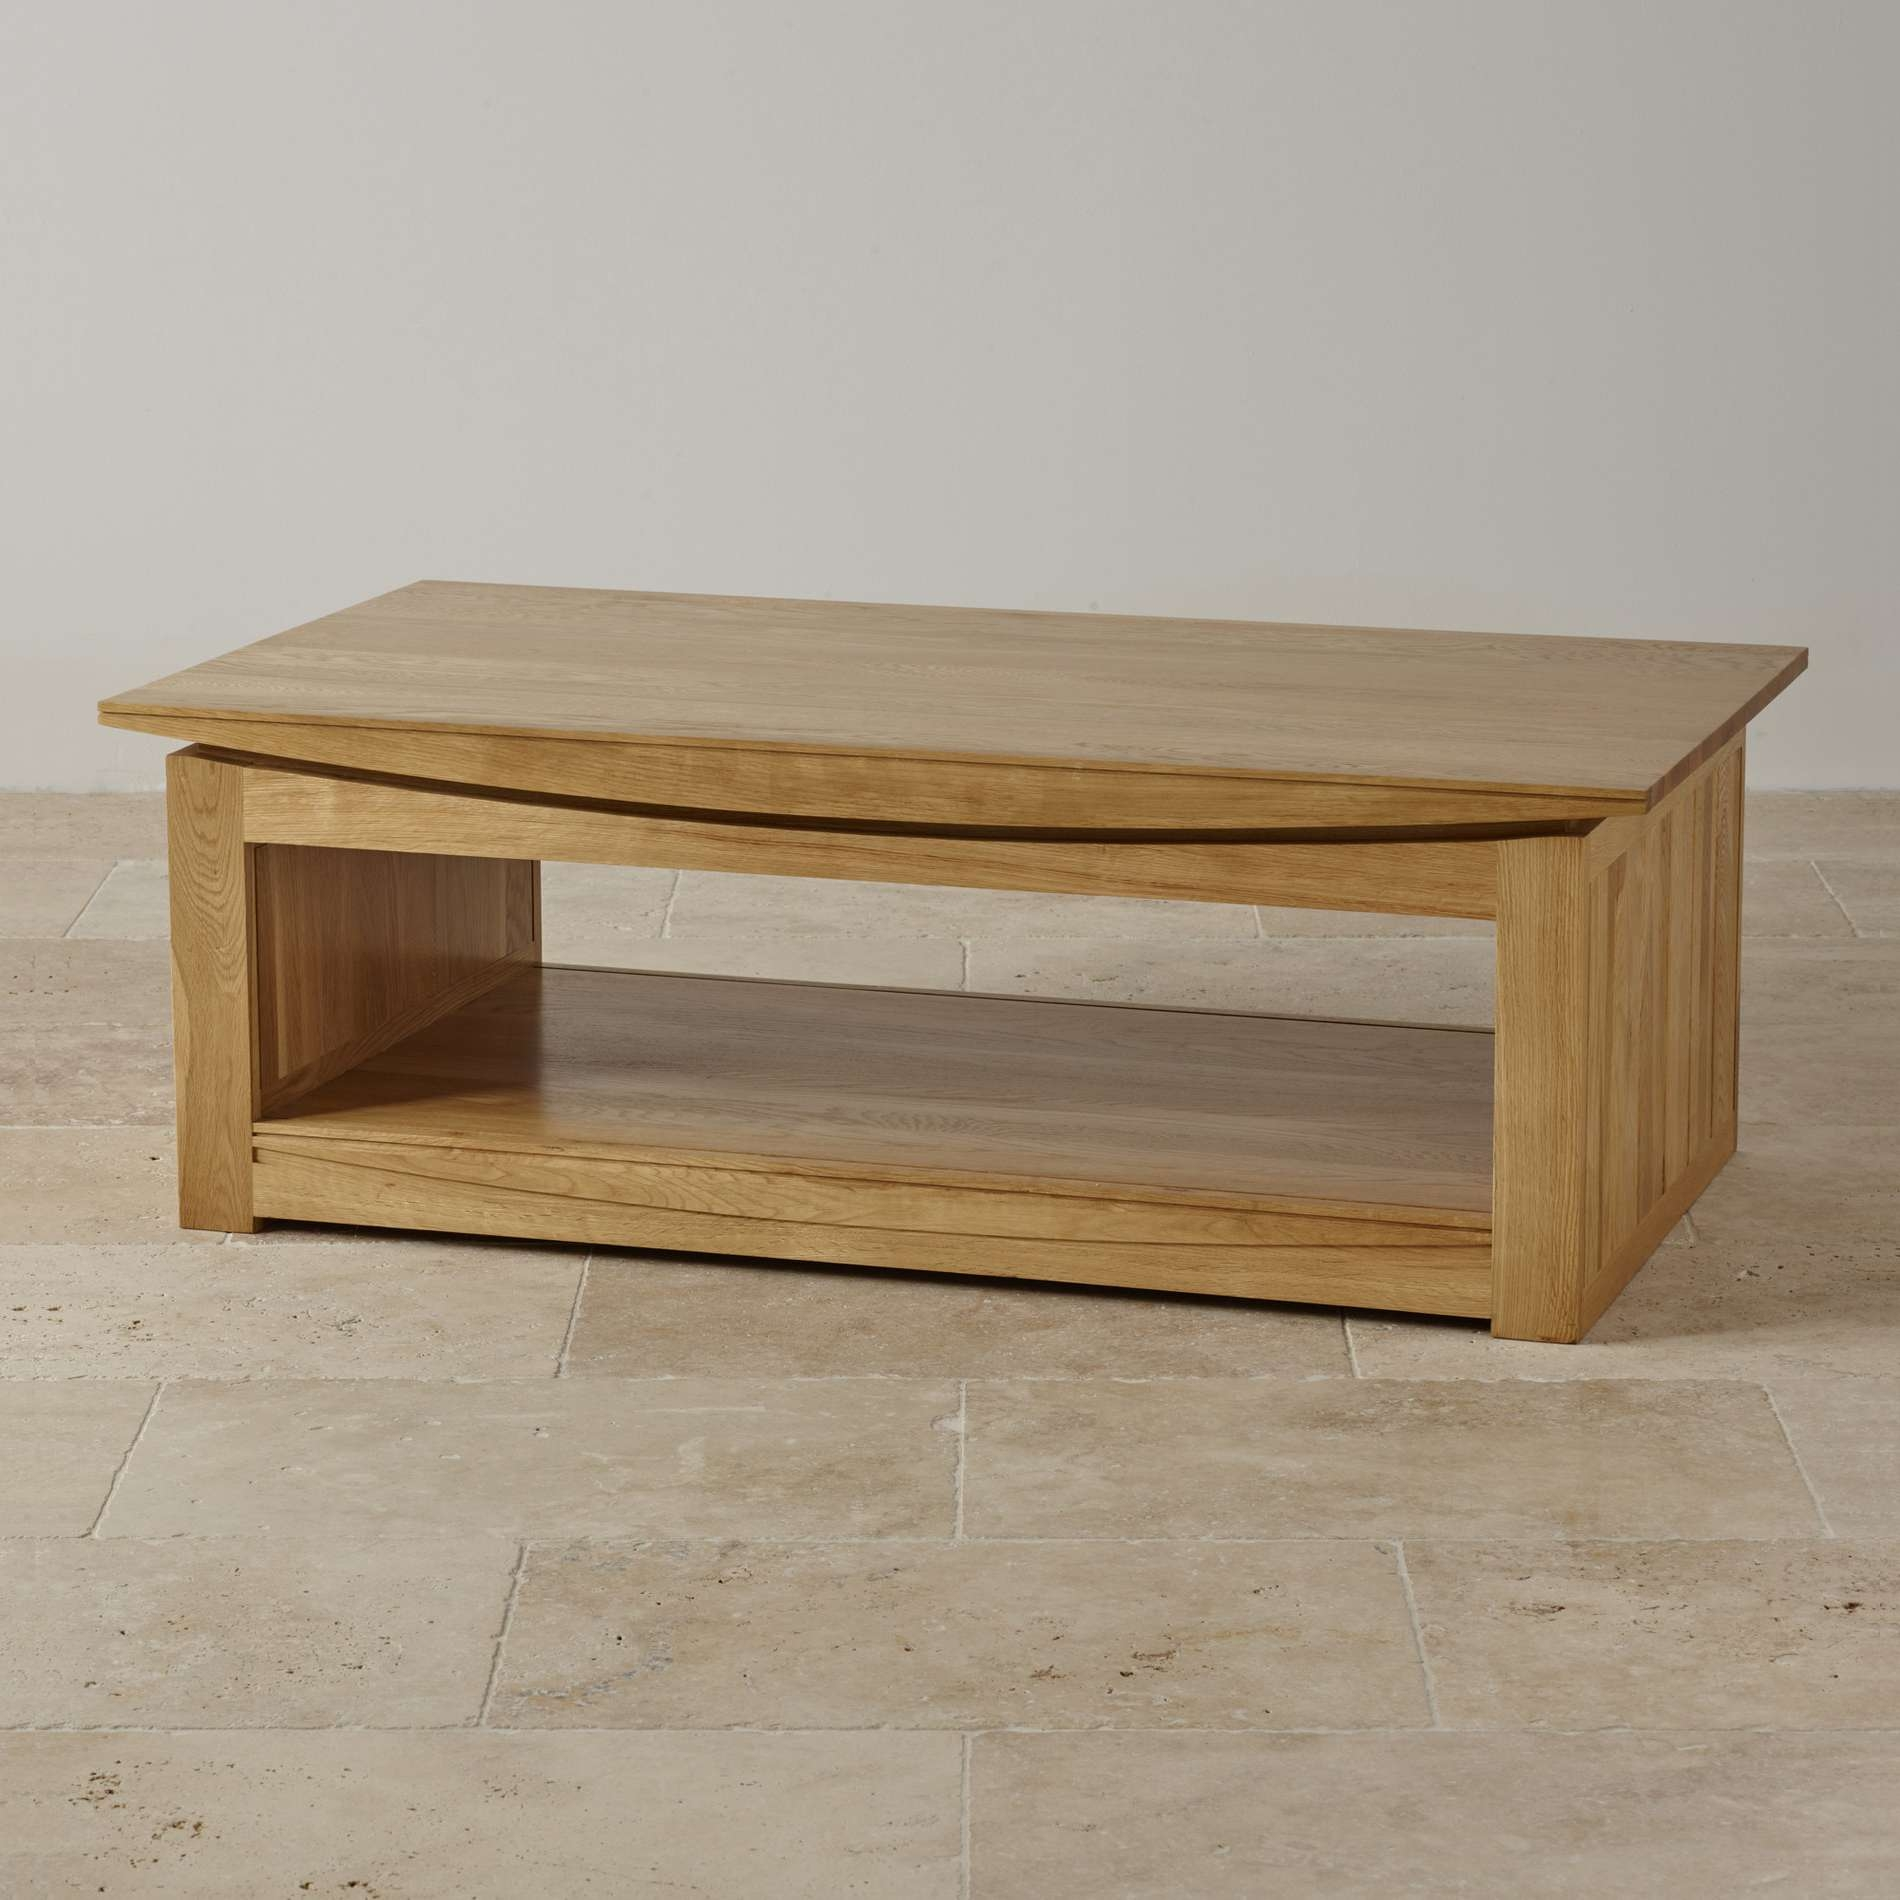 Newest Oak Furniture Coffee Tables In Coffee Table : Fabulous Coffee Table With Drawers Wicker Coffee (View 8 of 20)